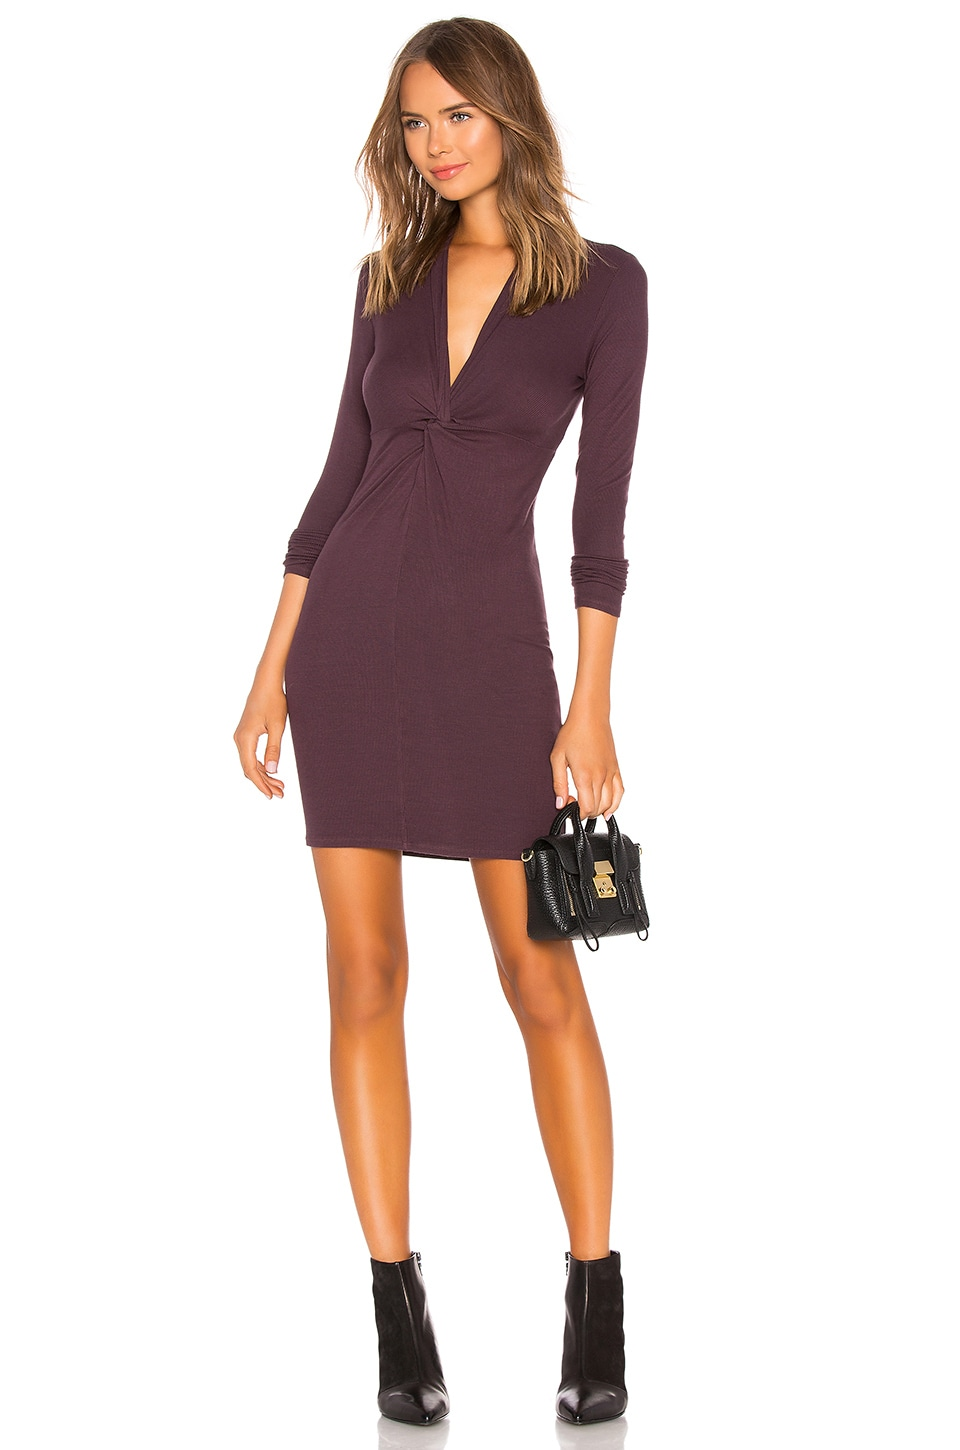 Enza Costa Silks ENZA COSTA RIB TWISTED MINI DRESS IN PURPLE.